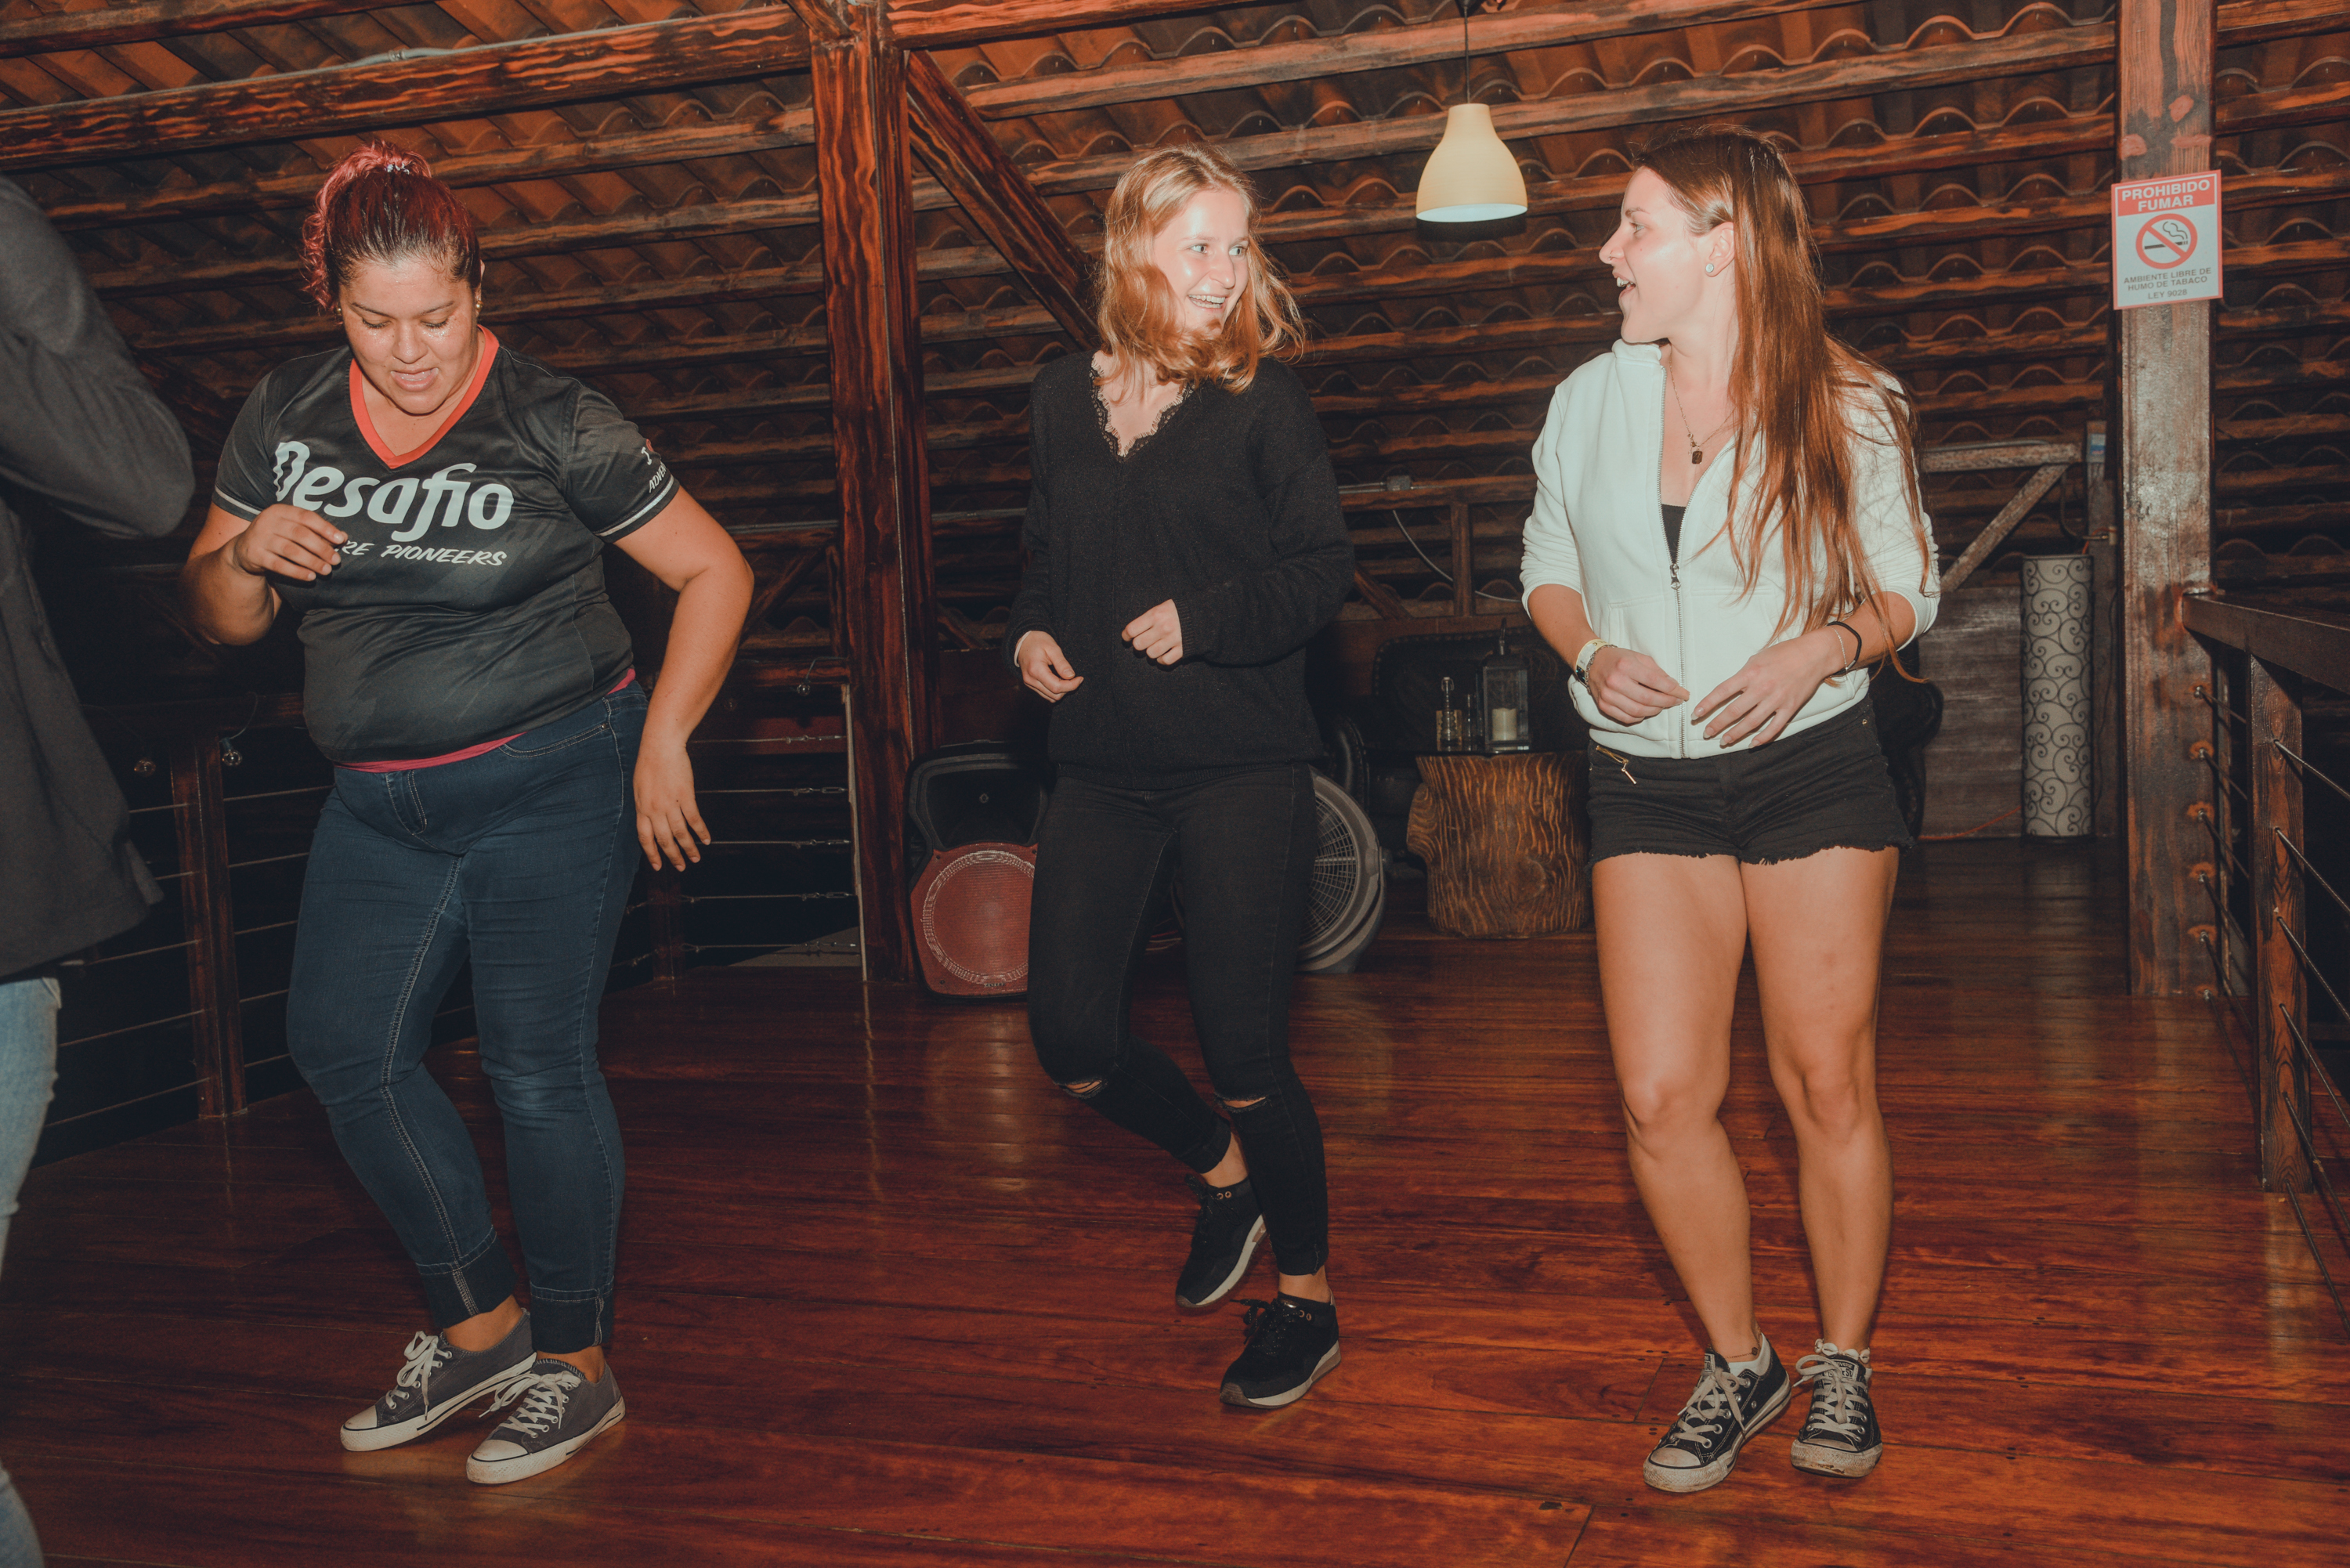 Dance Lessons are perfect for all ages! Practice your moves a bit more